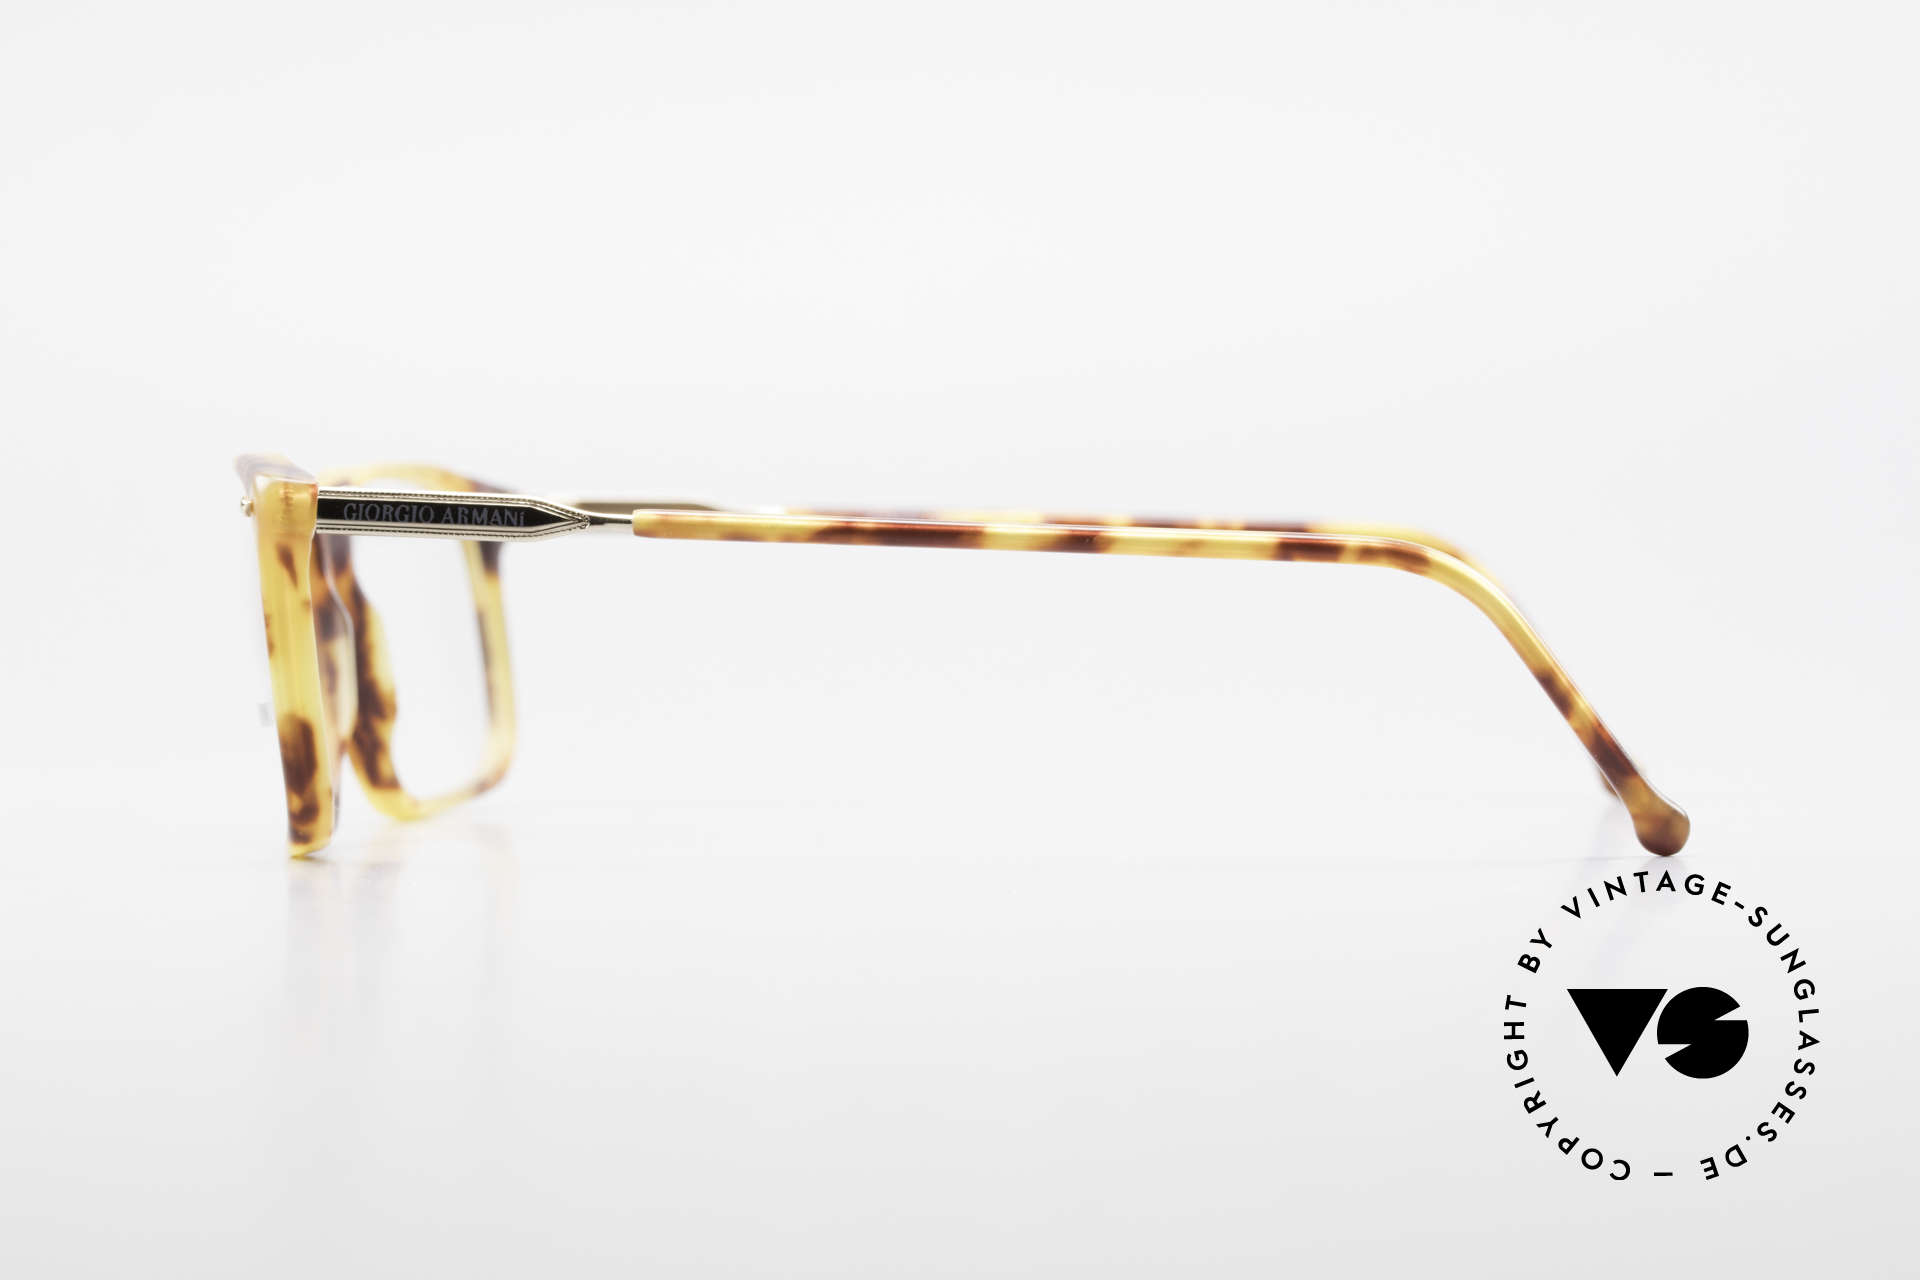 Giorgio Armani 332 True Vintage Eyeglass Frame, frame is made for lenses of any kind (optical/sun), Made for Men